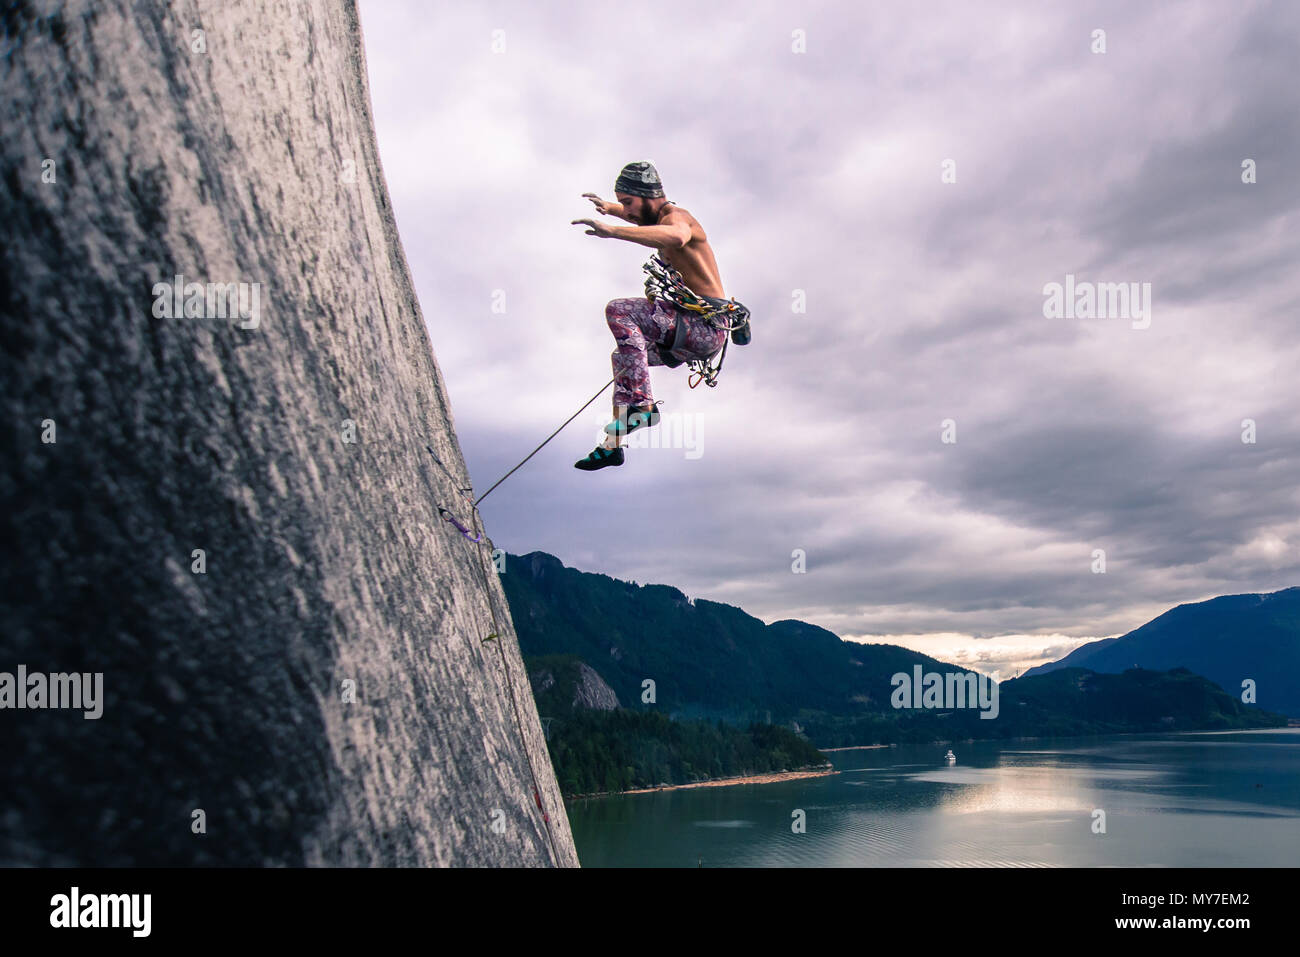 Man with climbing rope jumping off rock face on Malamute, Squamish, Canada - Stock Image